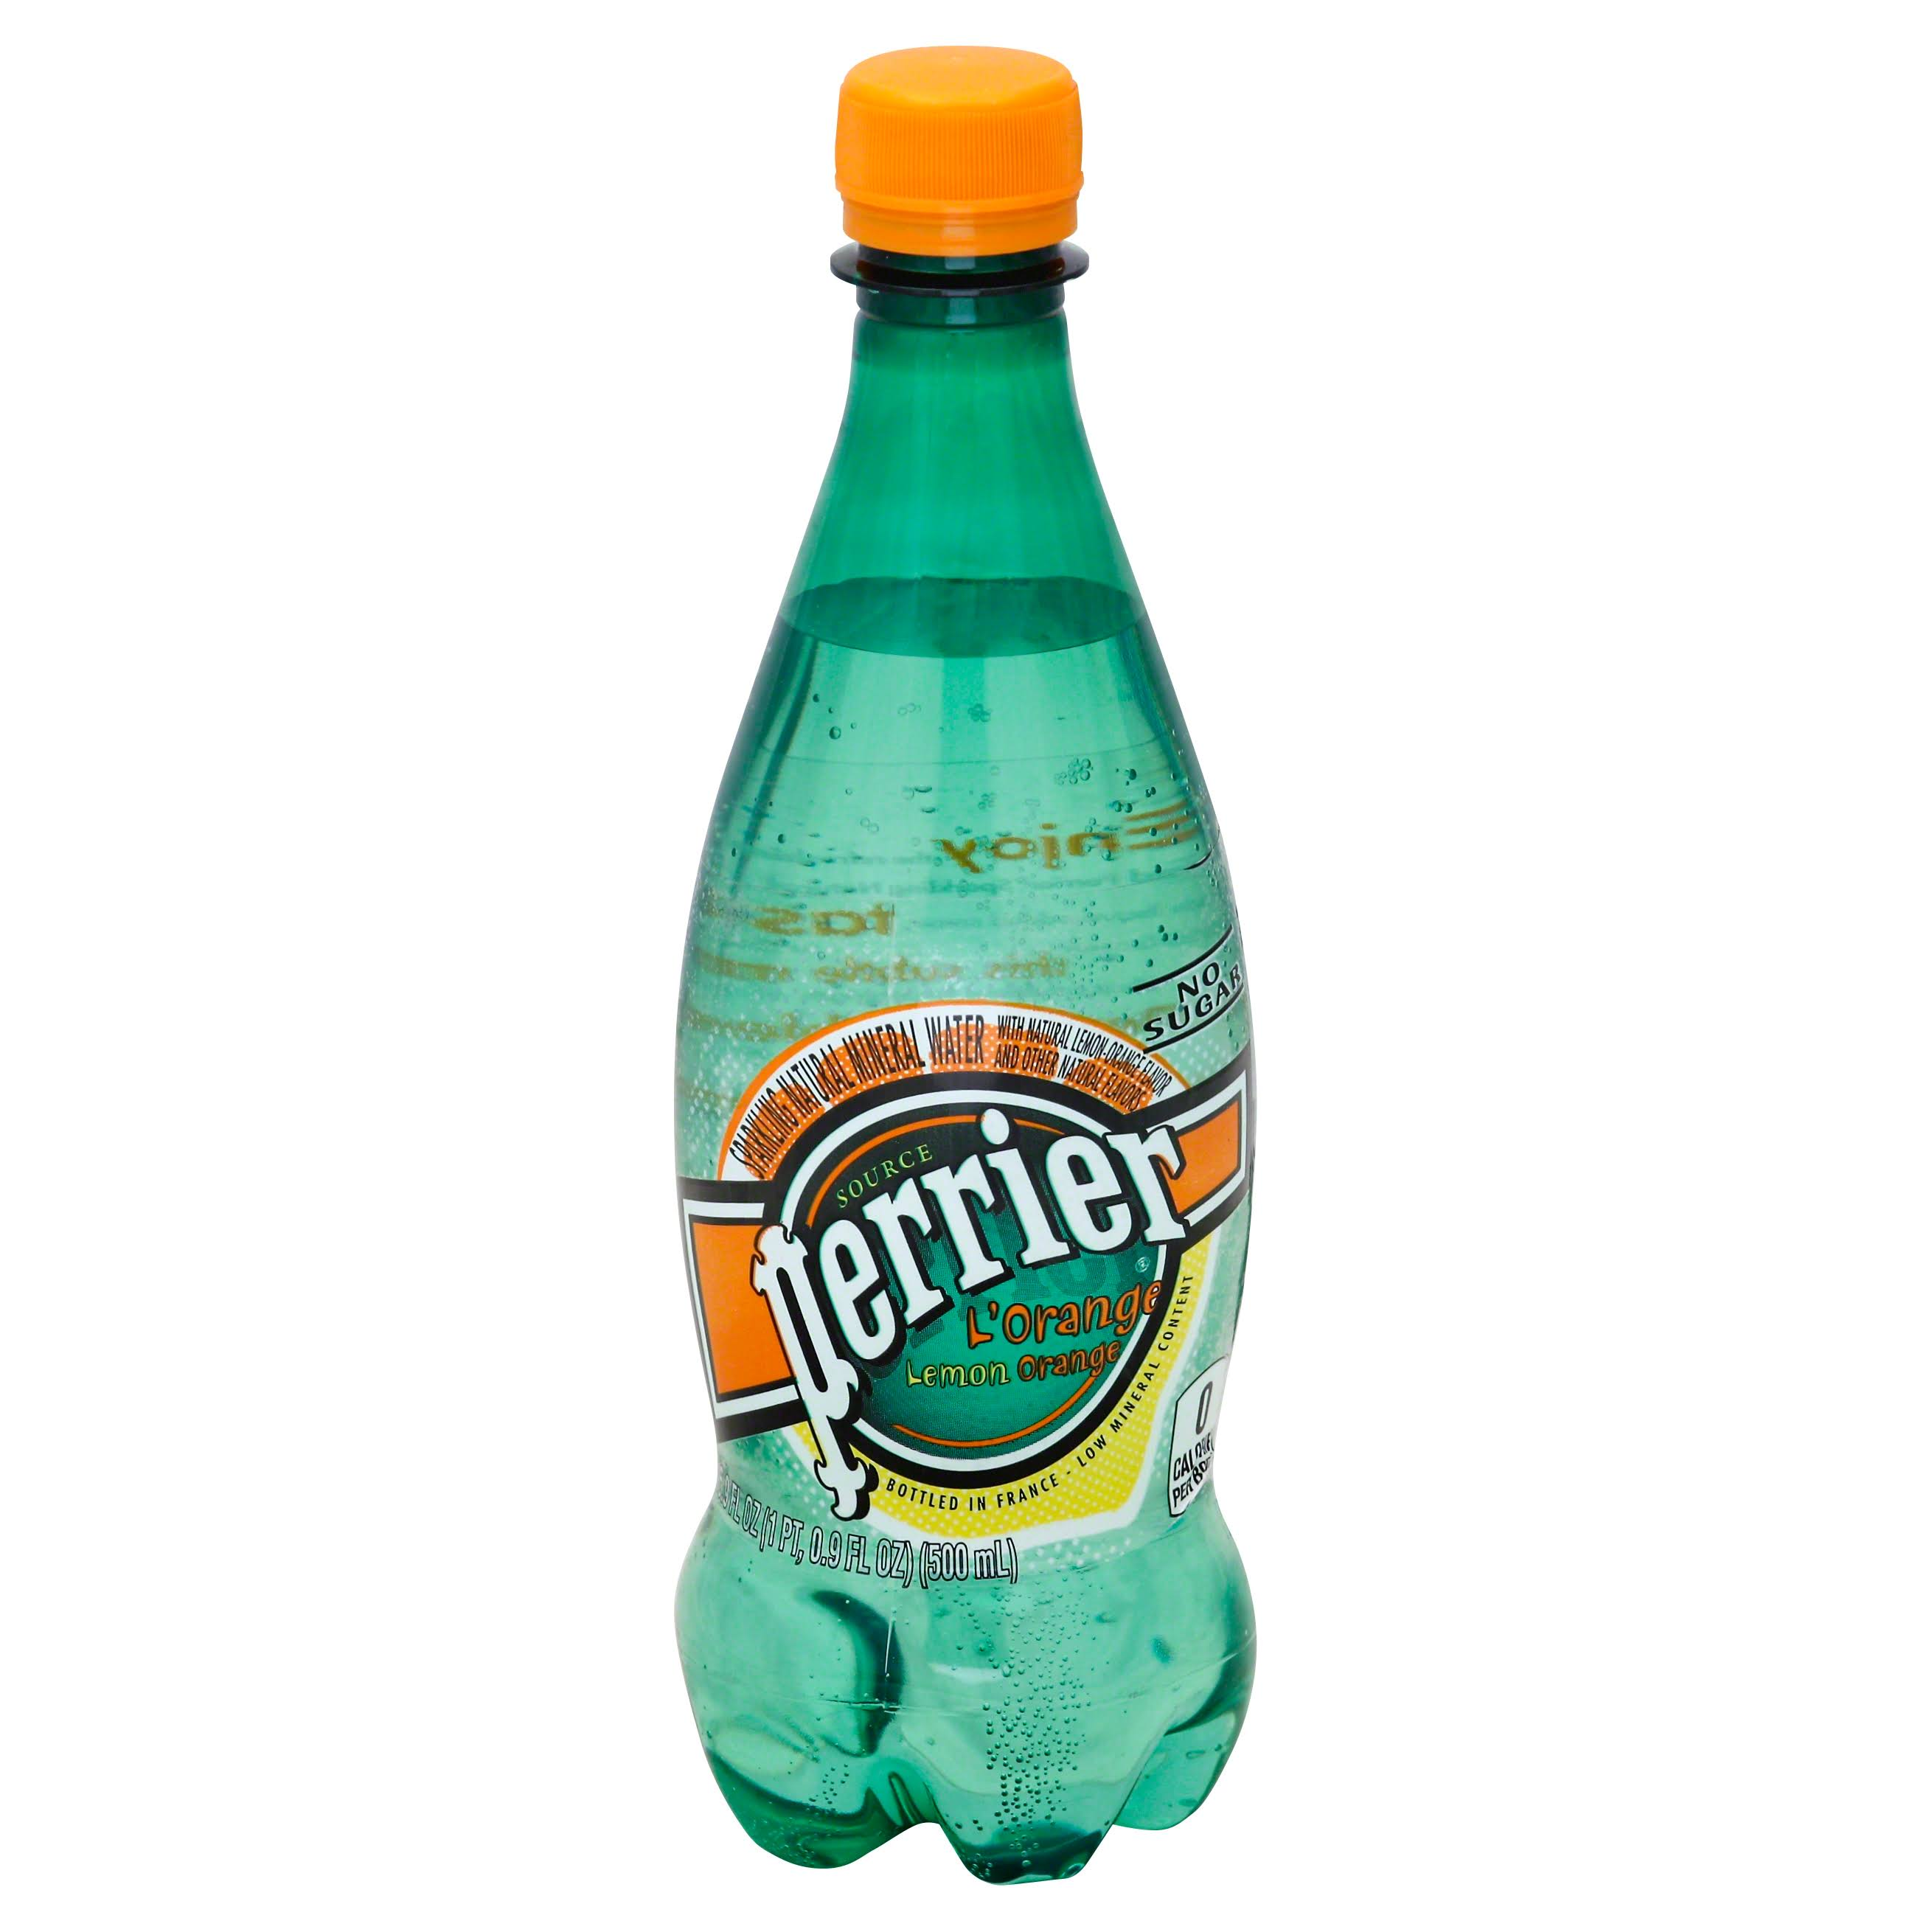 Perrier Sparkling Natural Mineral Water Bottle - Orange, 1.8oz